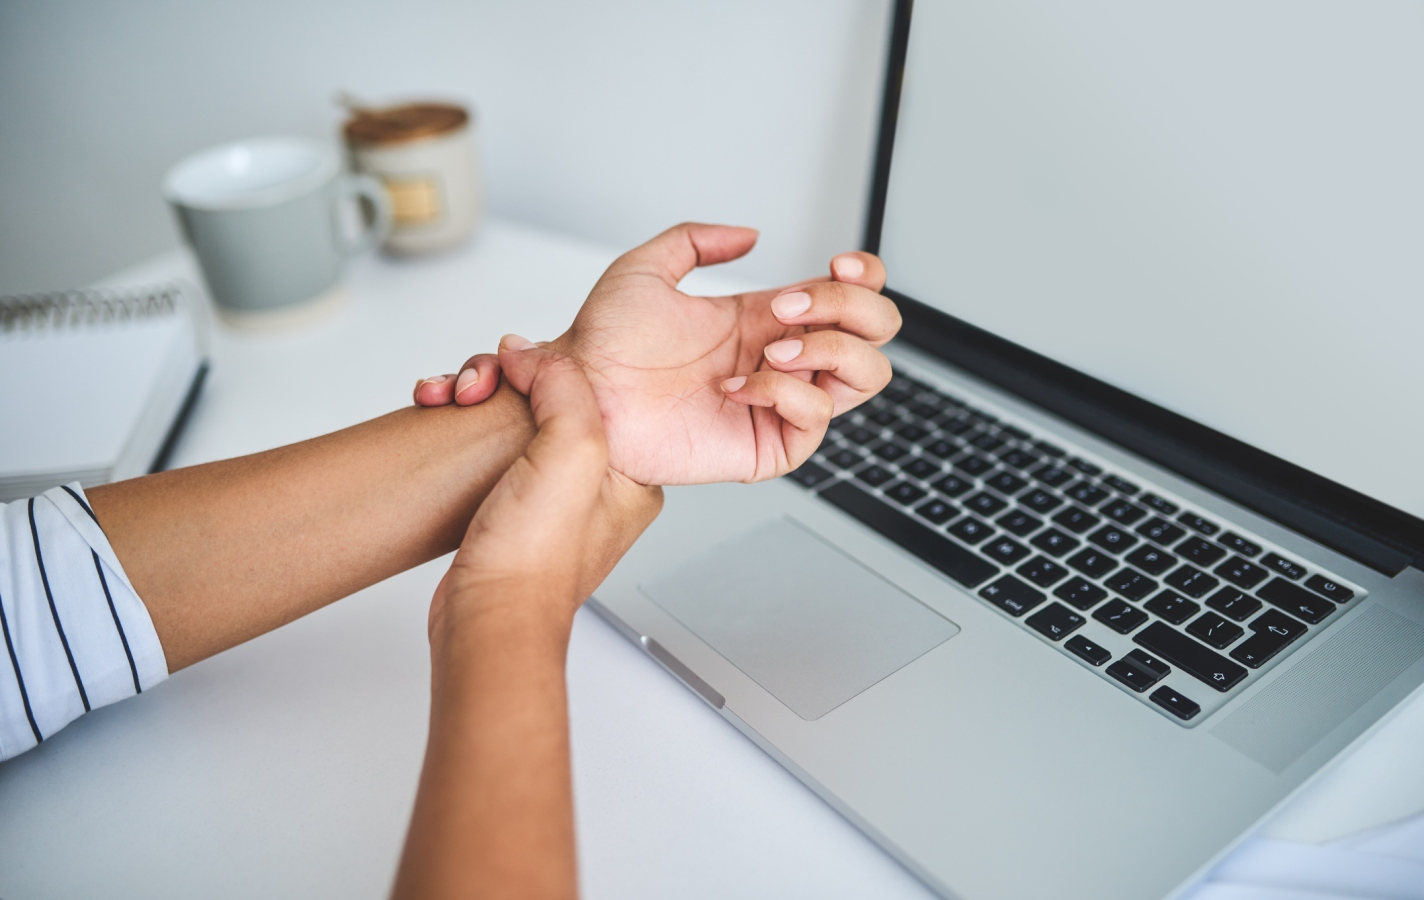 woman using laptop experiencing carpal tunnel pain in wrist